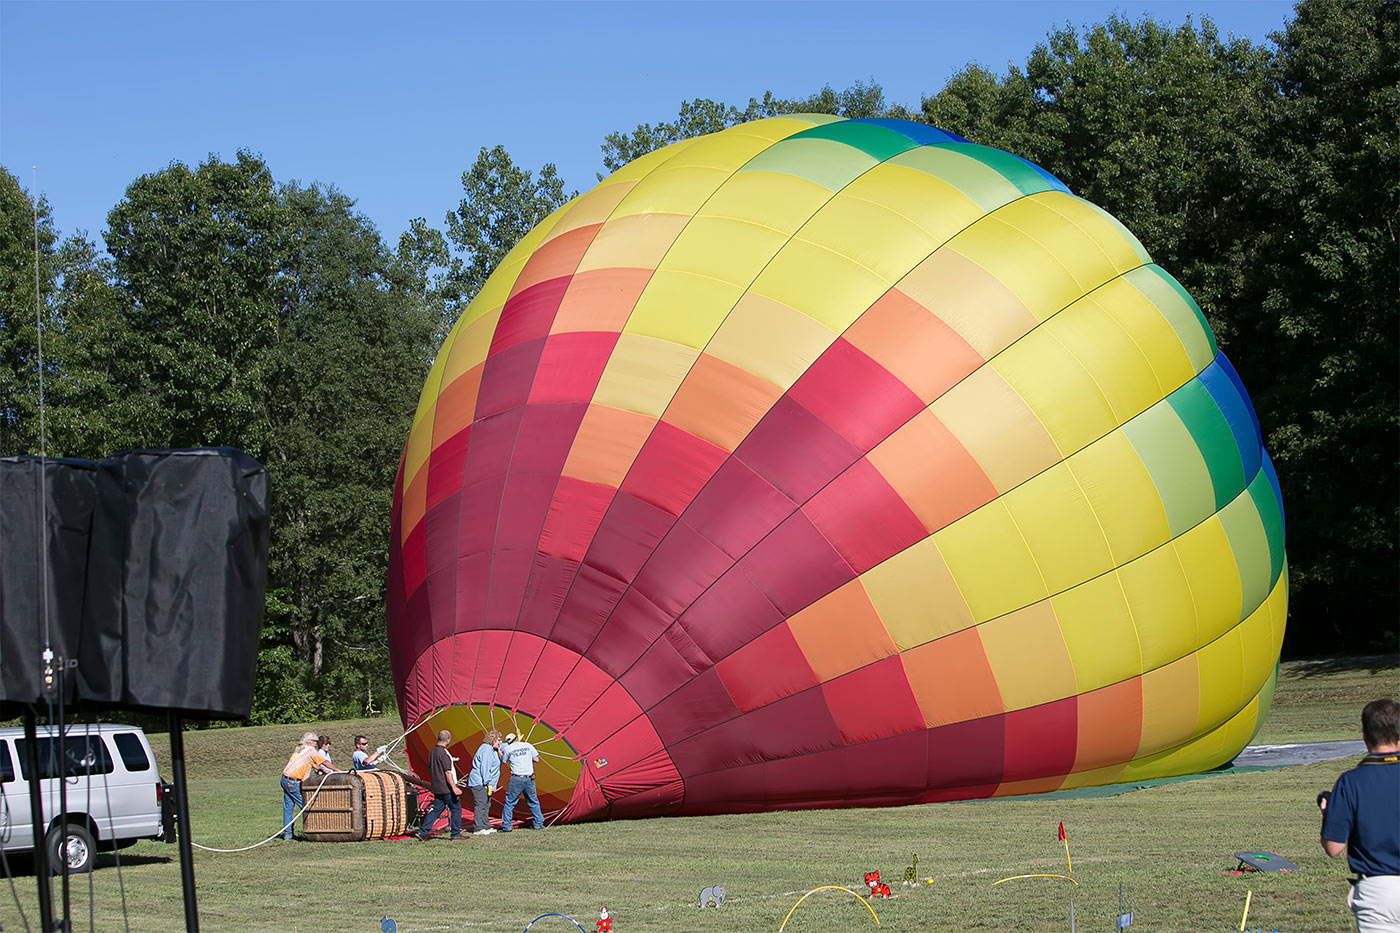 hot air balloon filling up on field